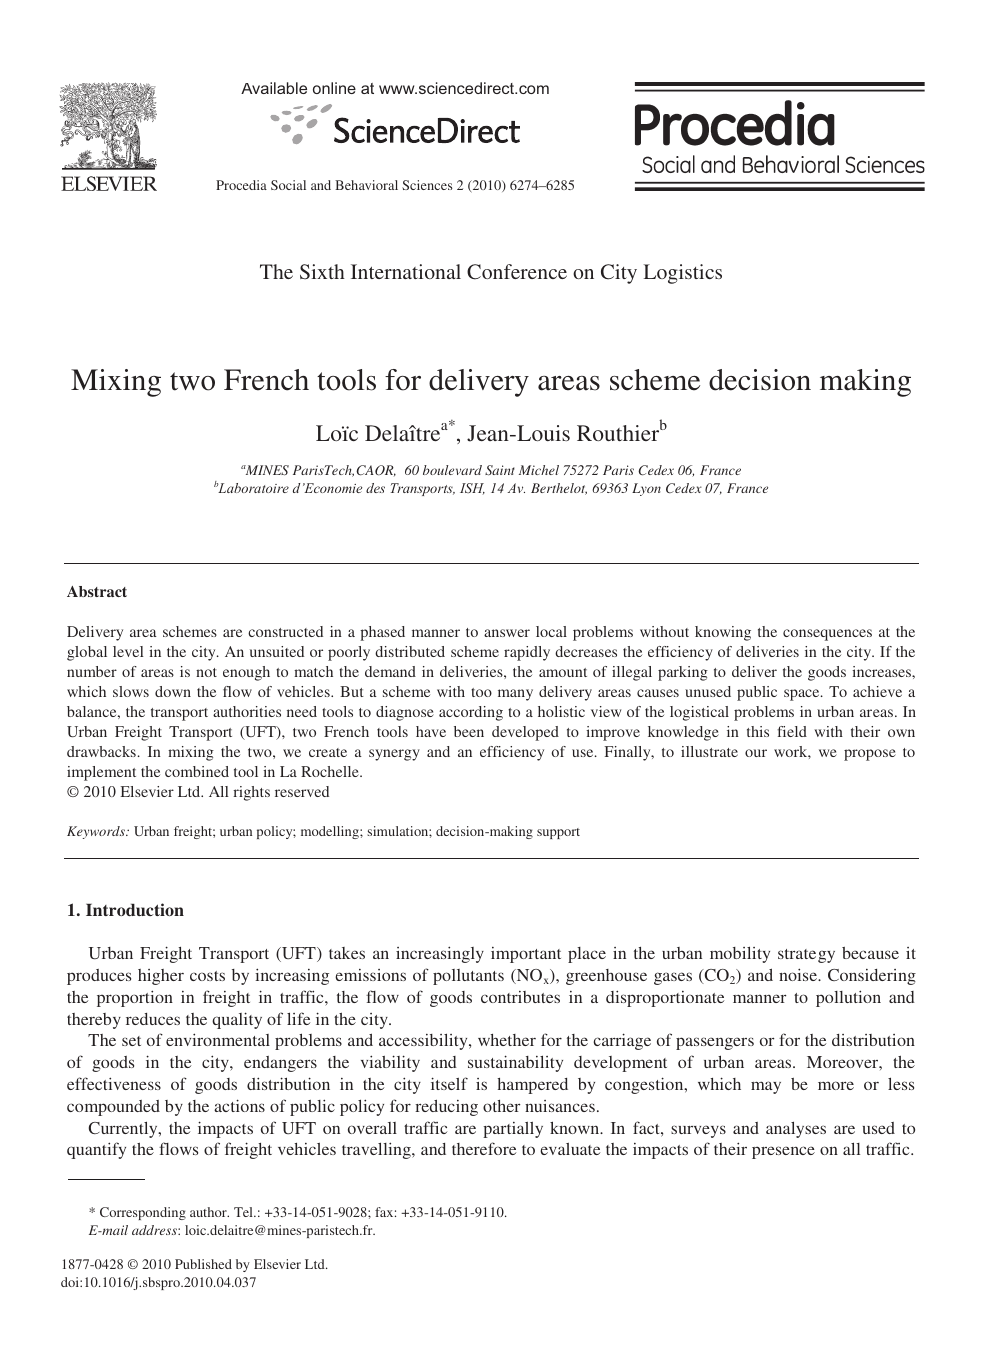 Mixing two French tools for delivery areas scheme decision making